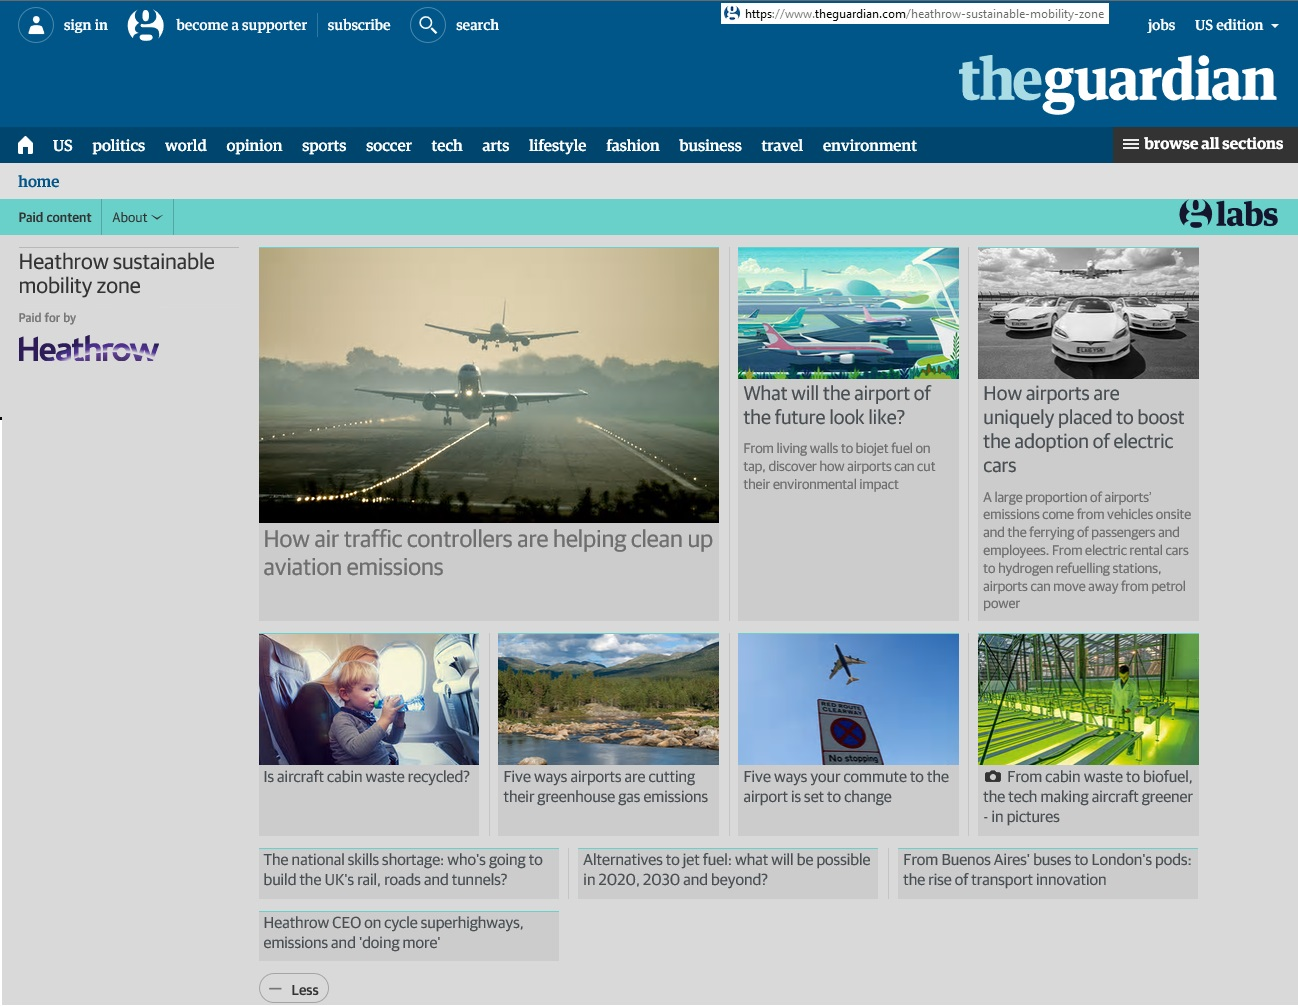 20170110scp-heathrow-sustainable-mobility-zone-theguardian-com-paid-content-webpage